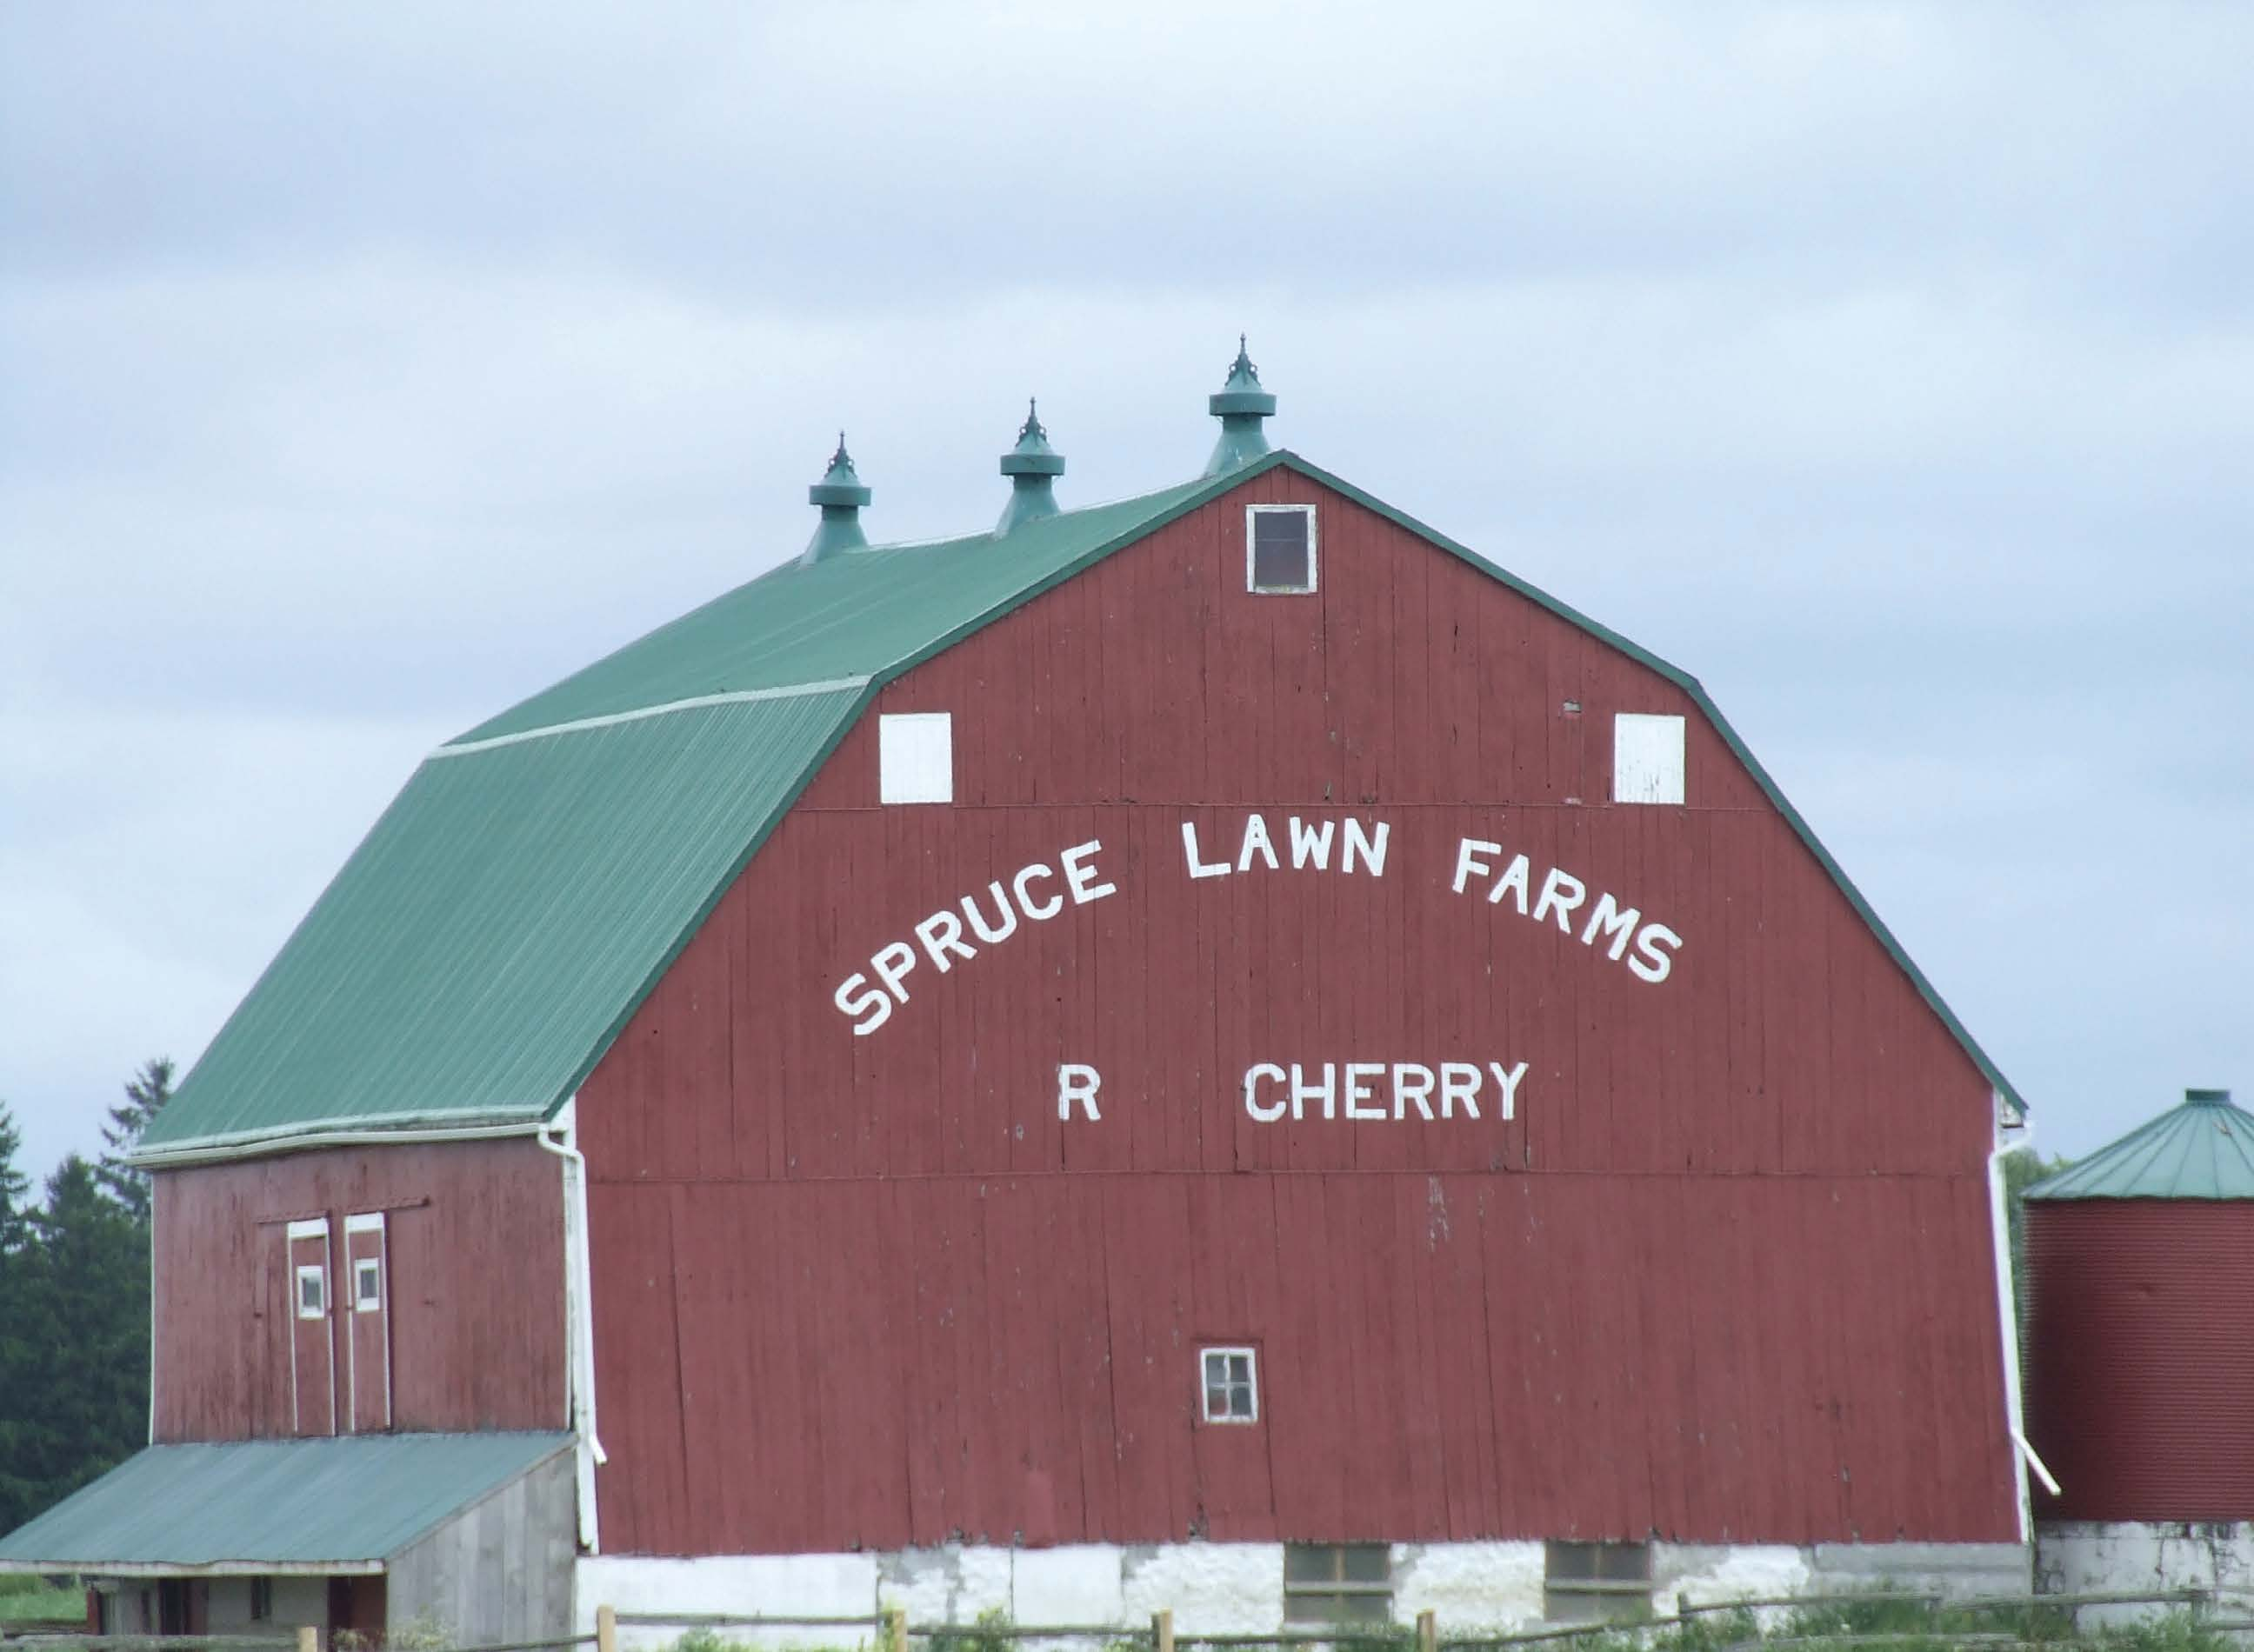 Barn History Mirrors Community Development The Rural